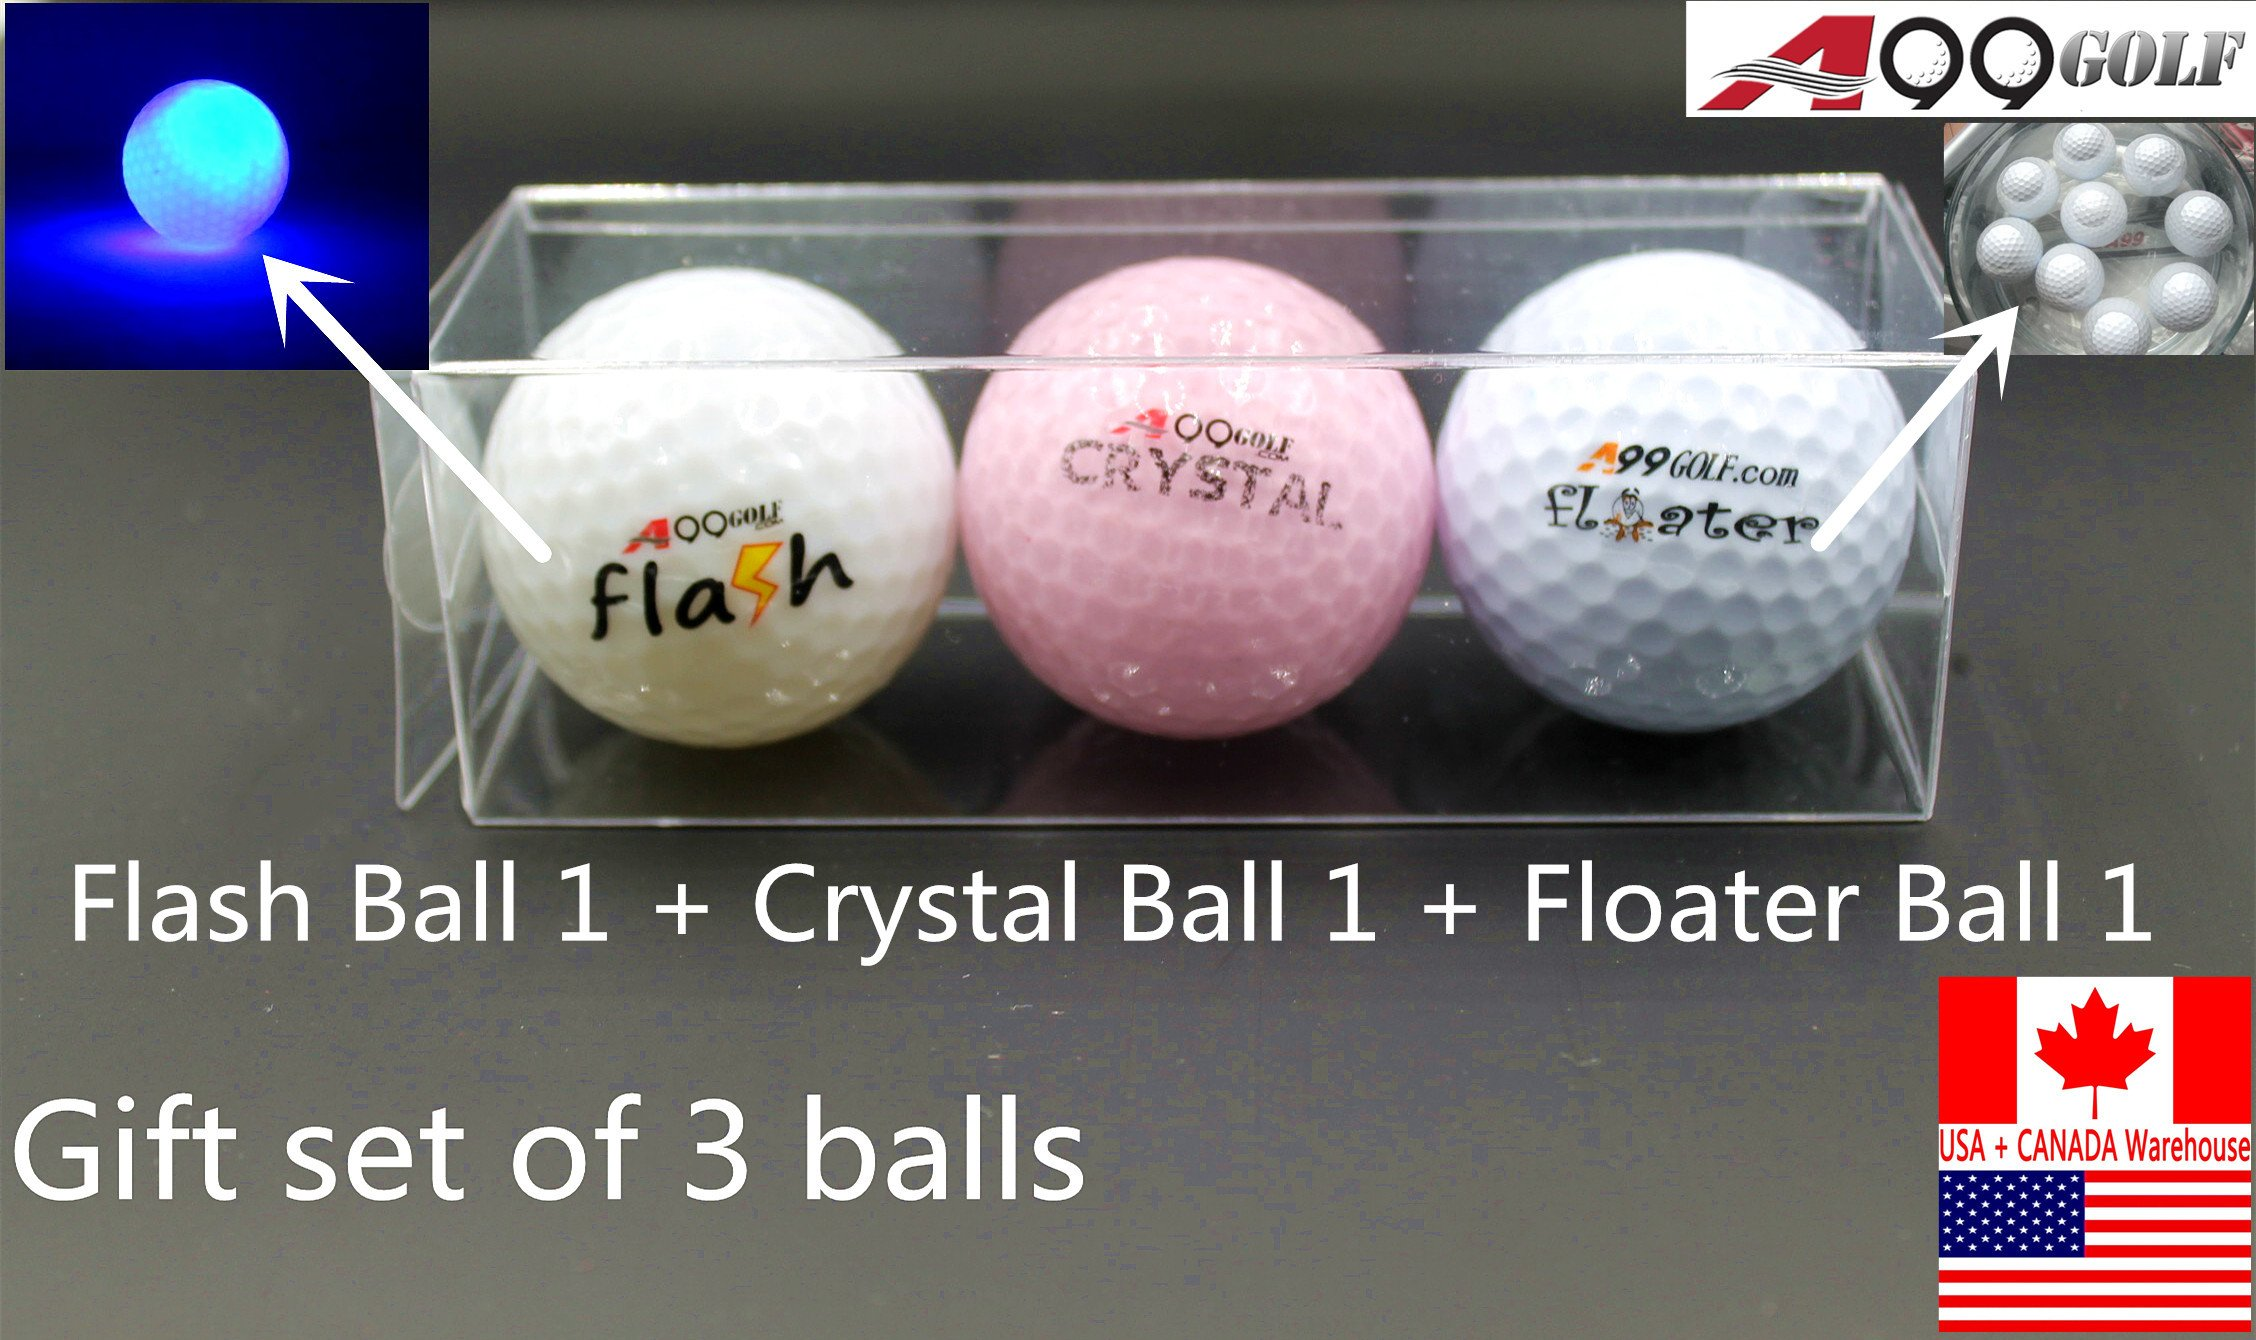 3pcs/set A99 Golf Practice aid gift set 1 crystal ball+1 flashing ball Green+ 1 floater ball, packed in PVC Box